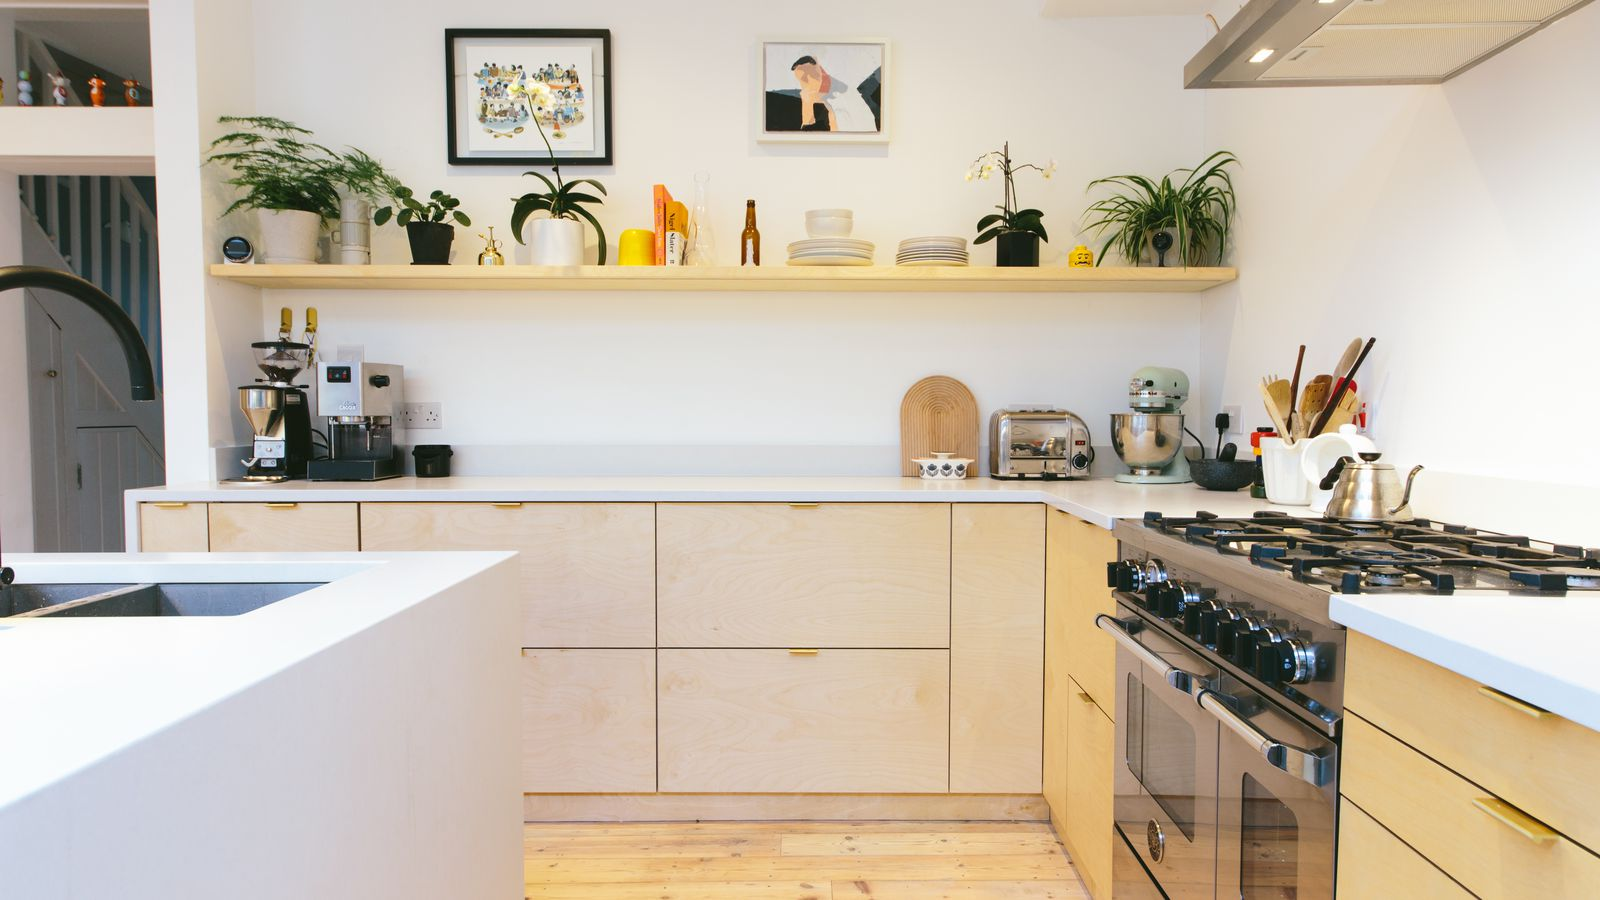 Ikea Kitchen Cabinets Hacked With Plywood By New Company Plykea Curbed